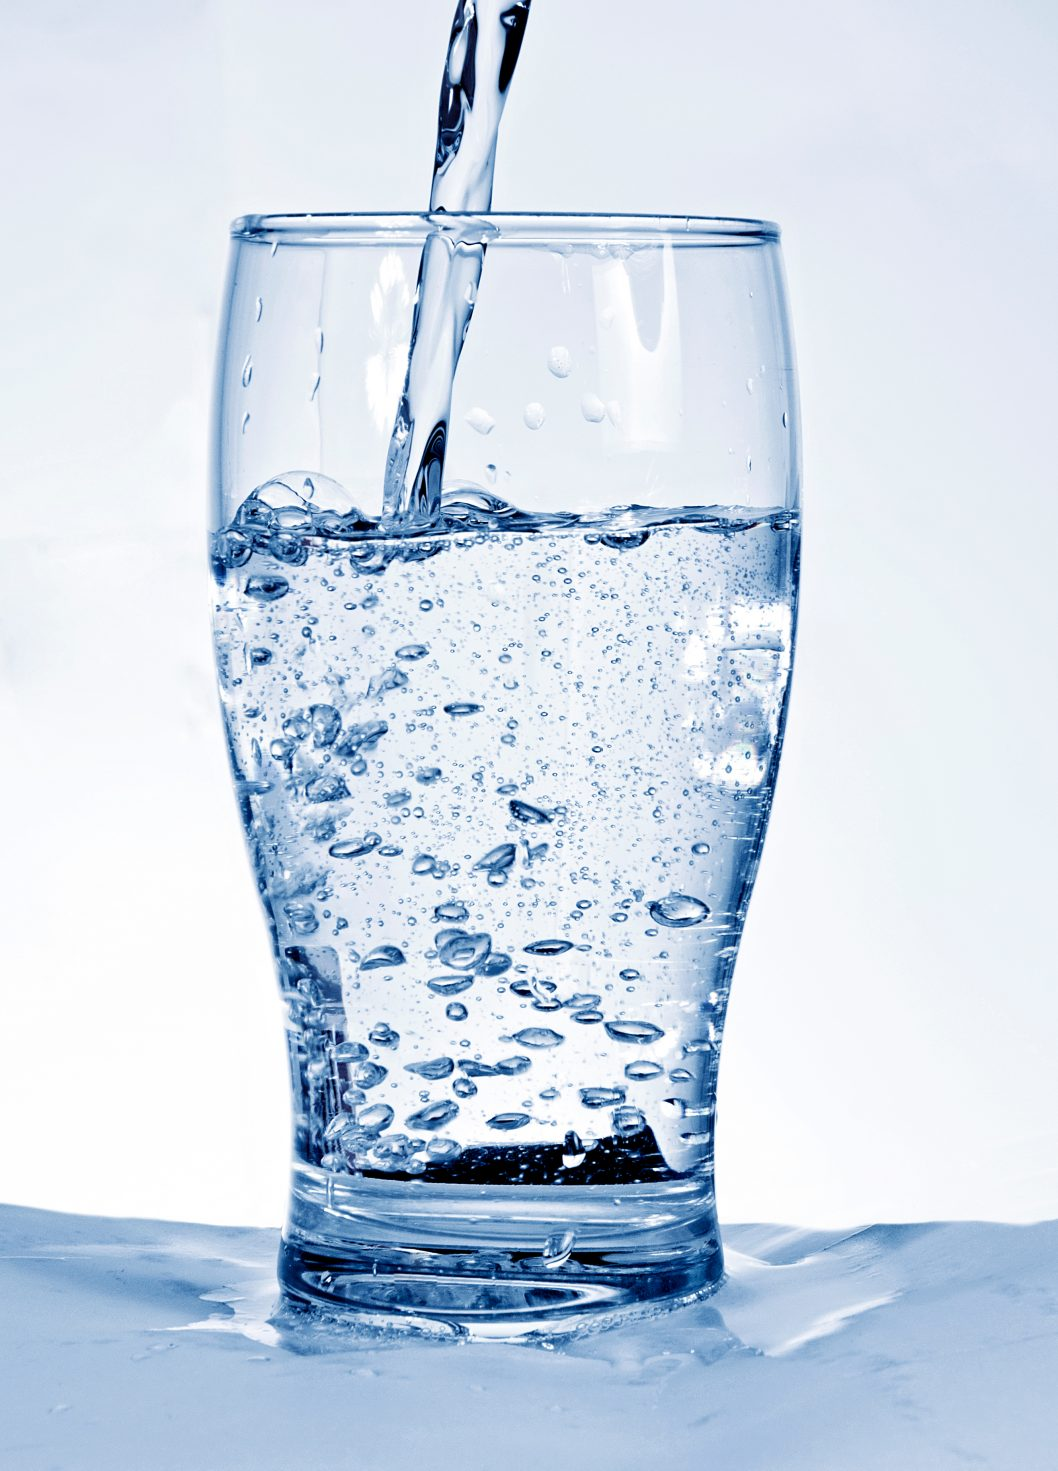 Things to Consider With Spring Water Home Delivery